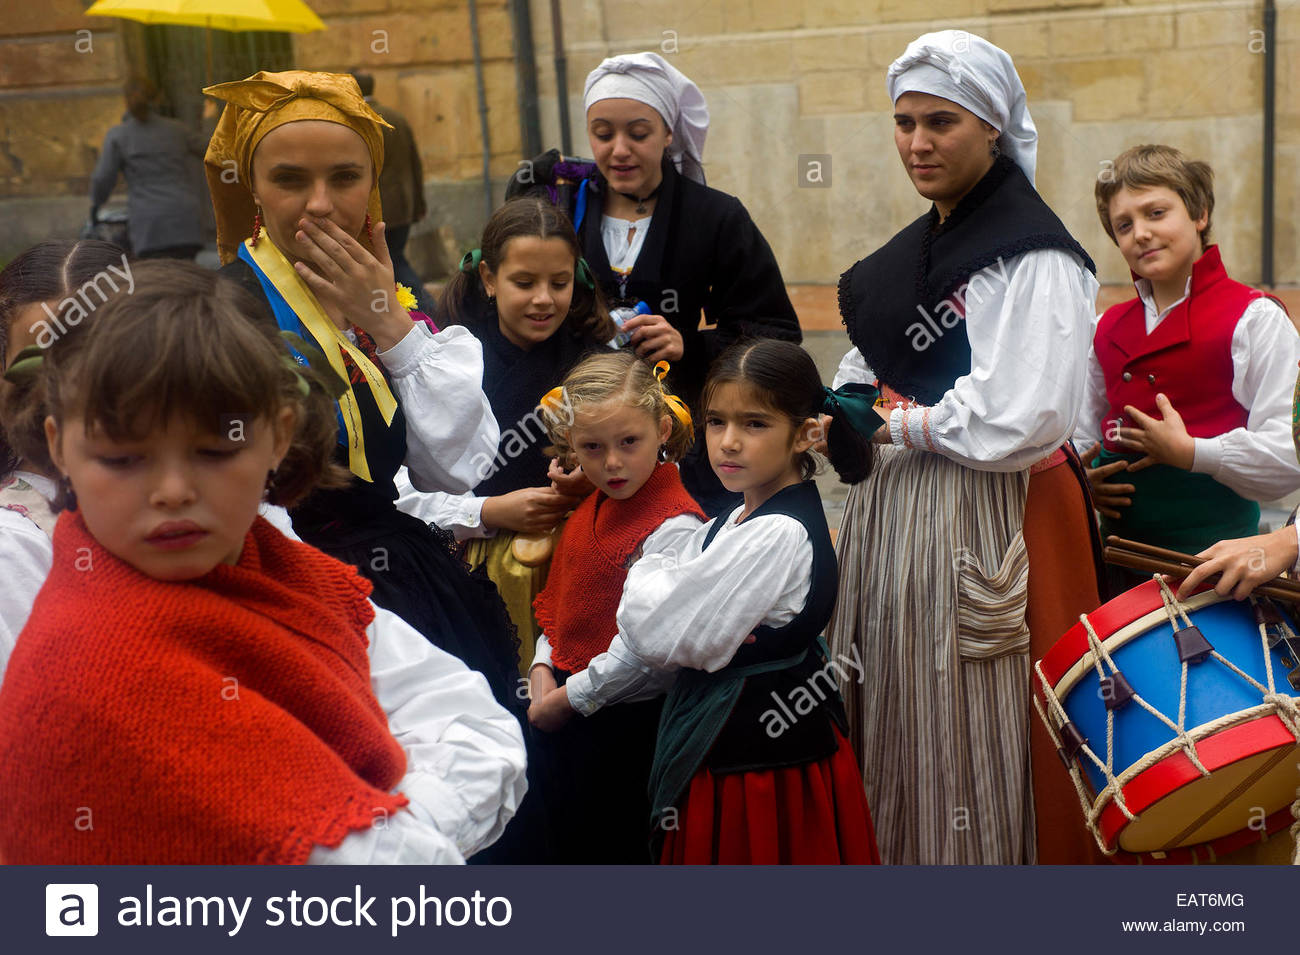 A folk group at the Plaza Alfonso II El Casto in Oviedo, Spain. - Stock Image